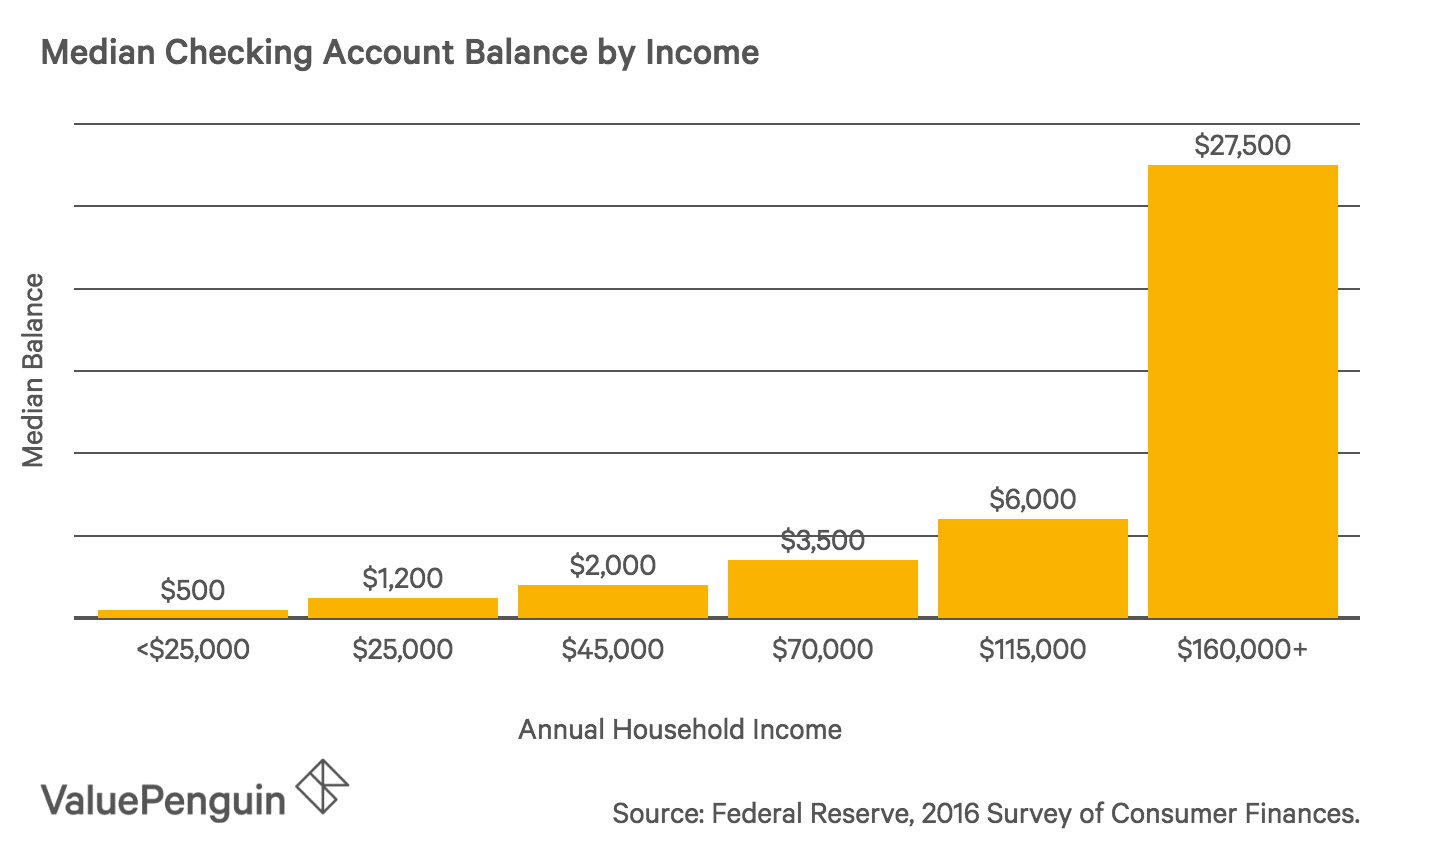 Bar graph of checking account balances for different income groups in the U.S.